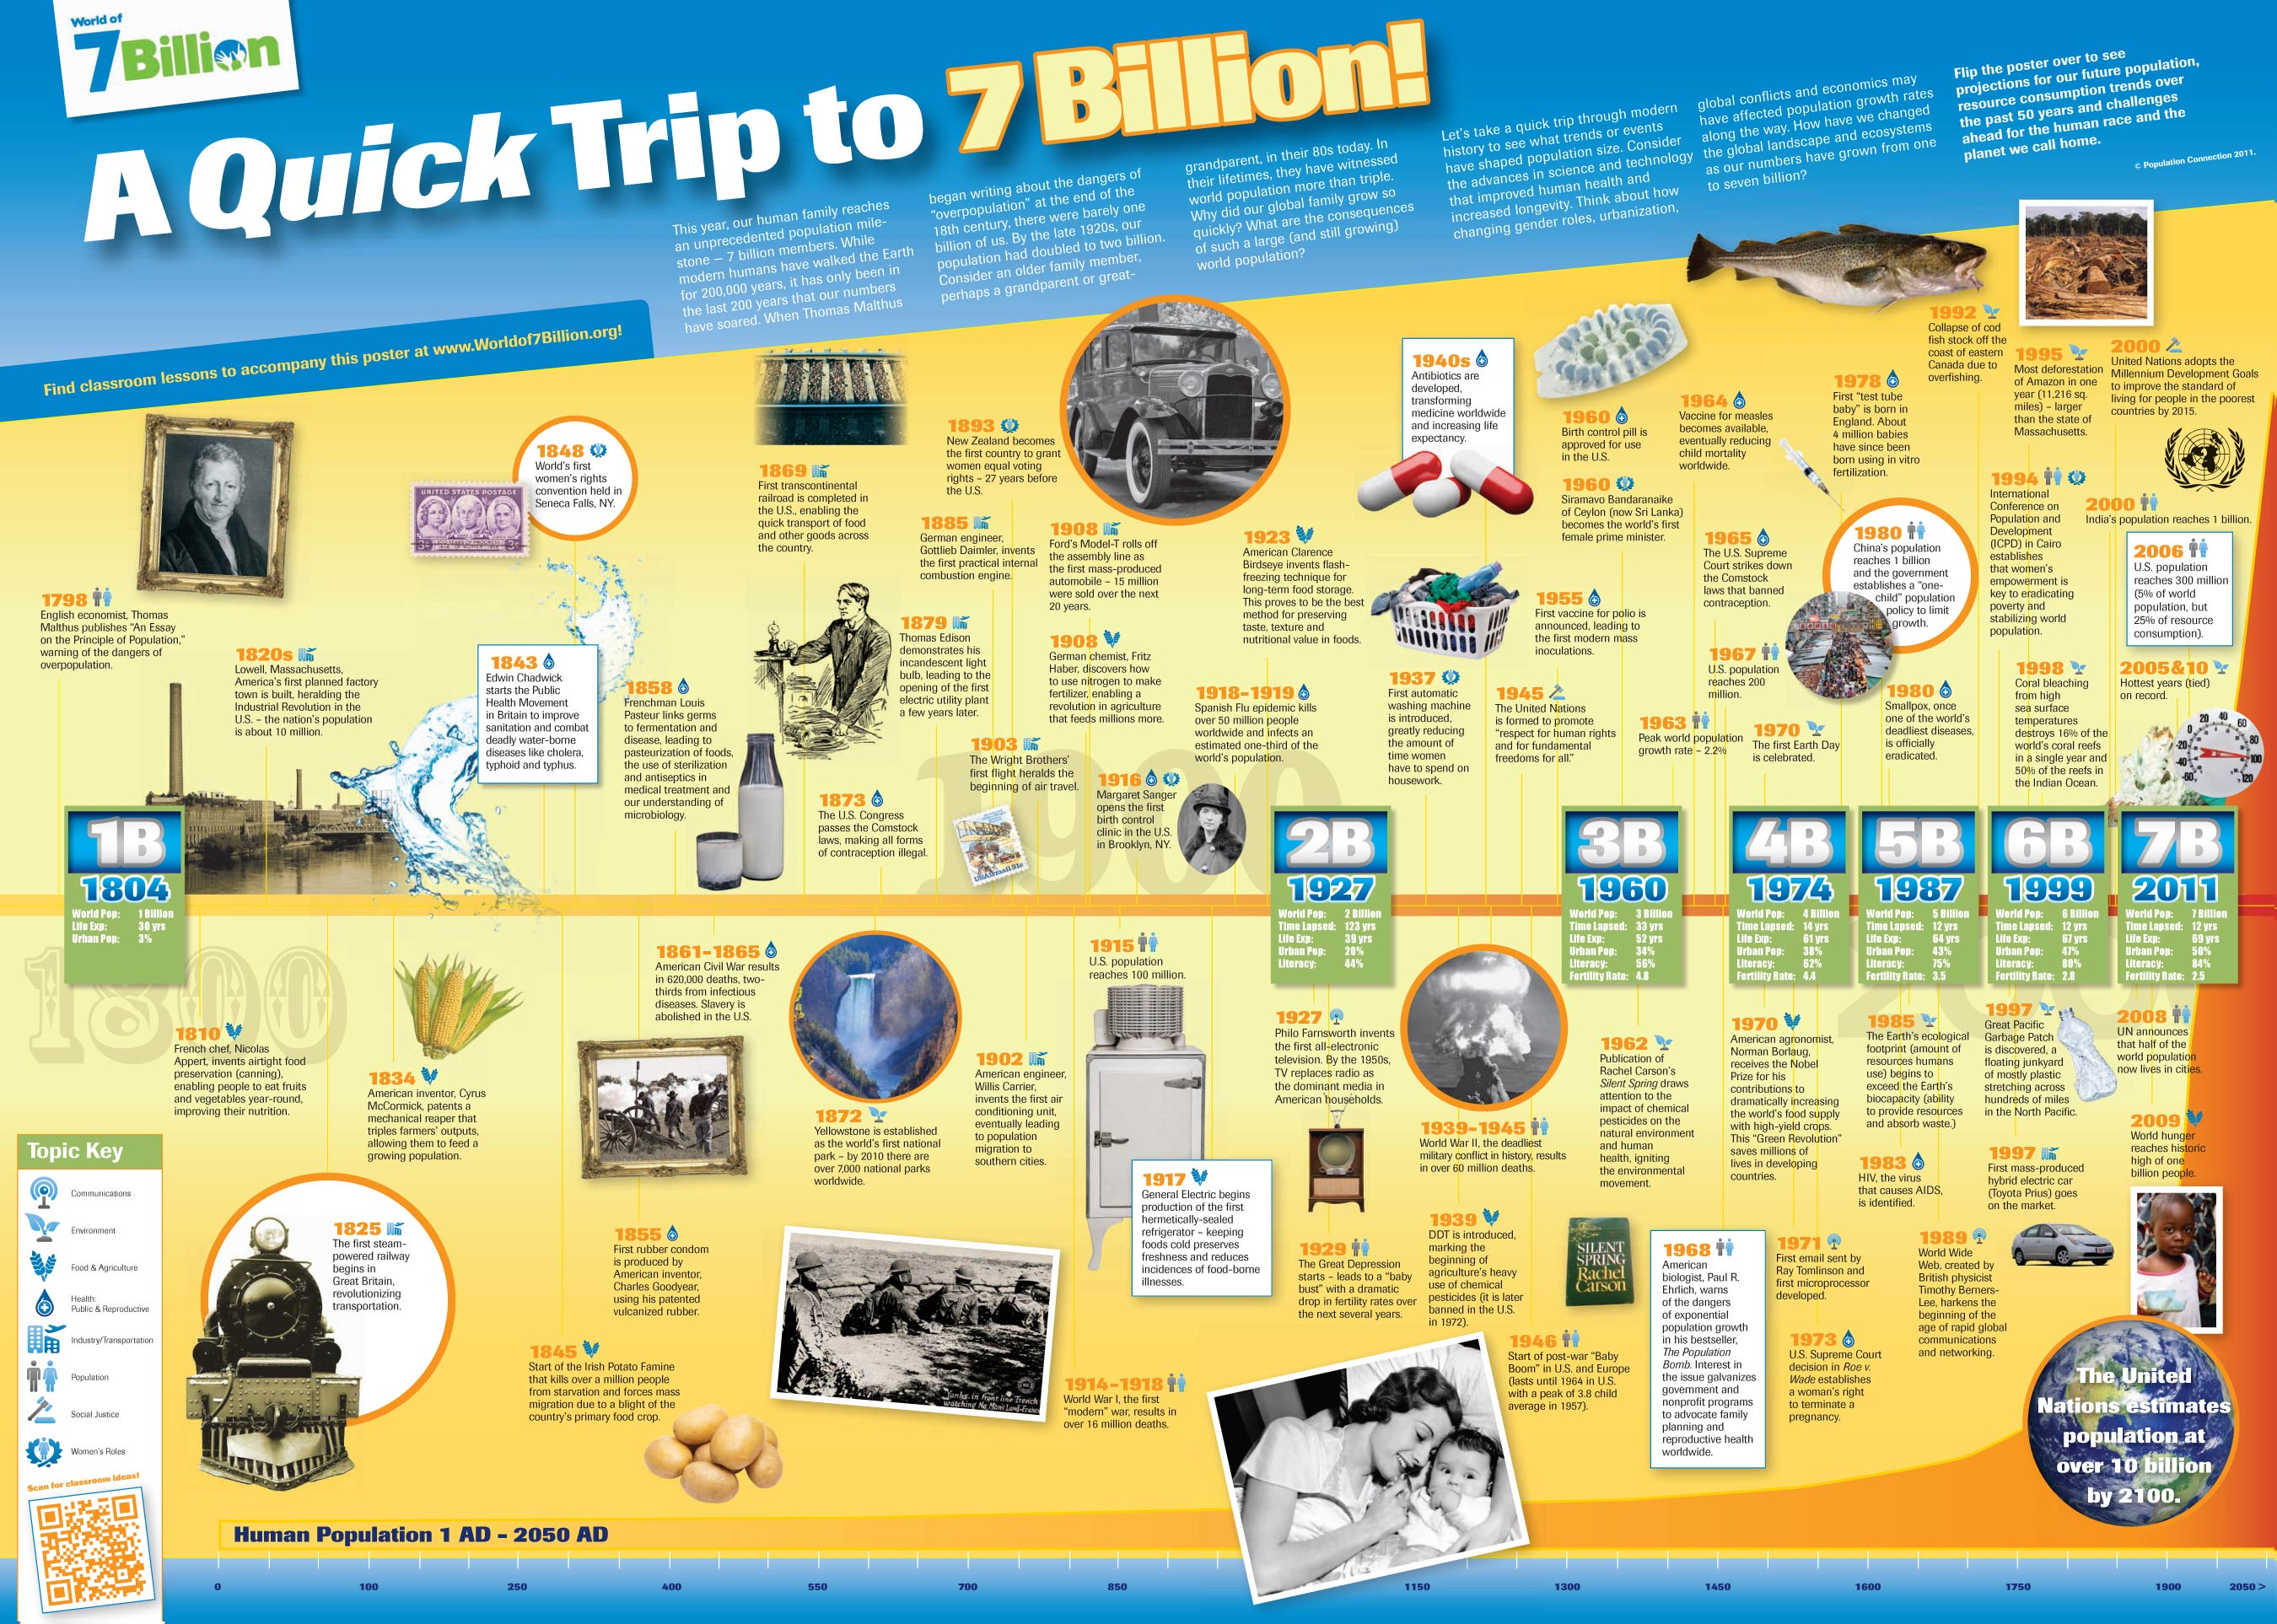 Wall Chart - World of 7 Billion